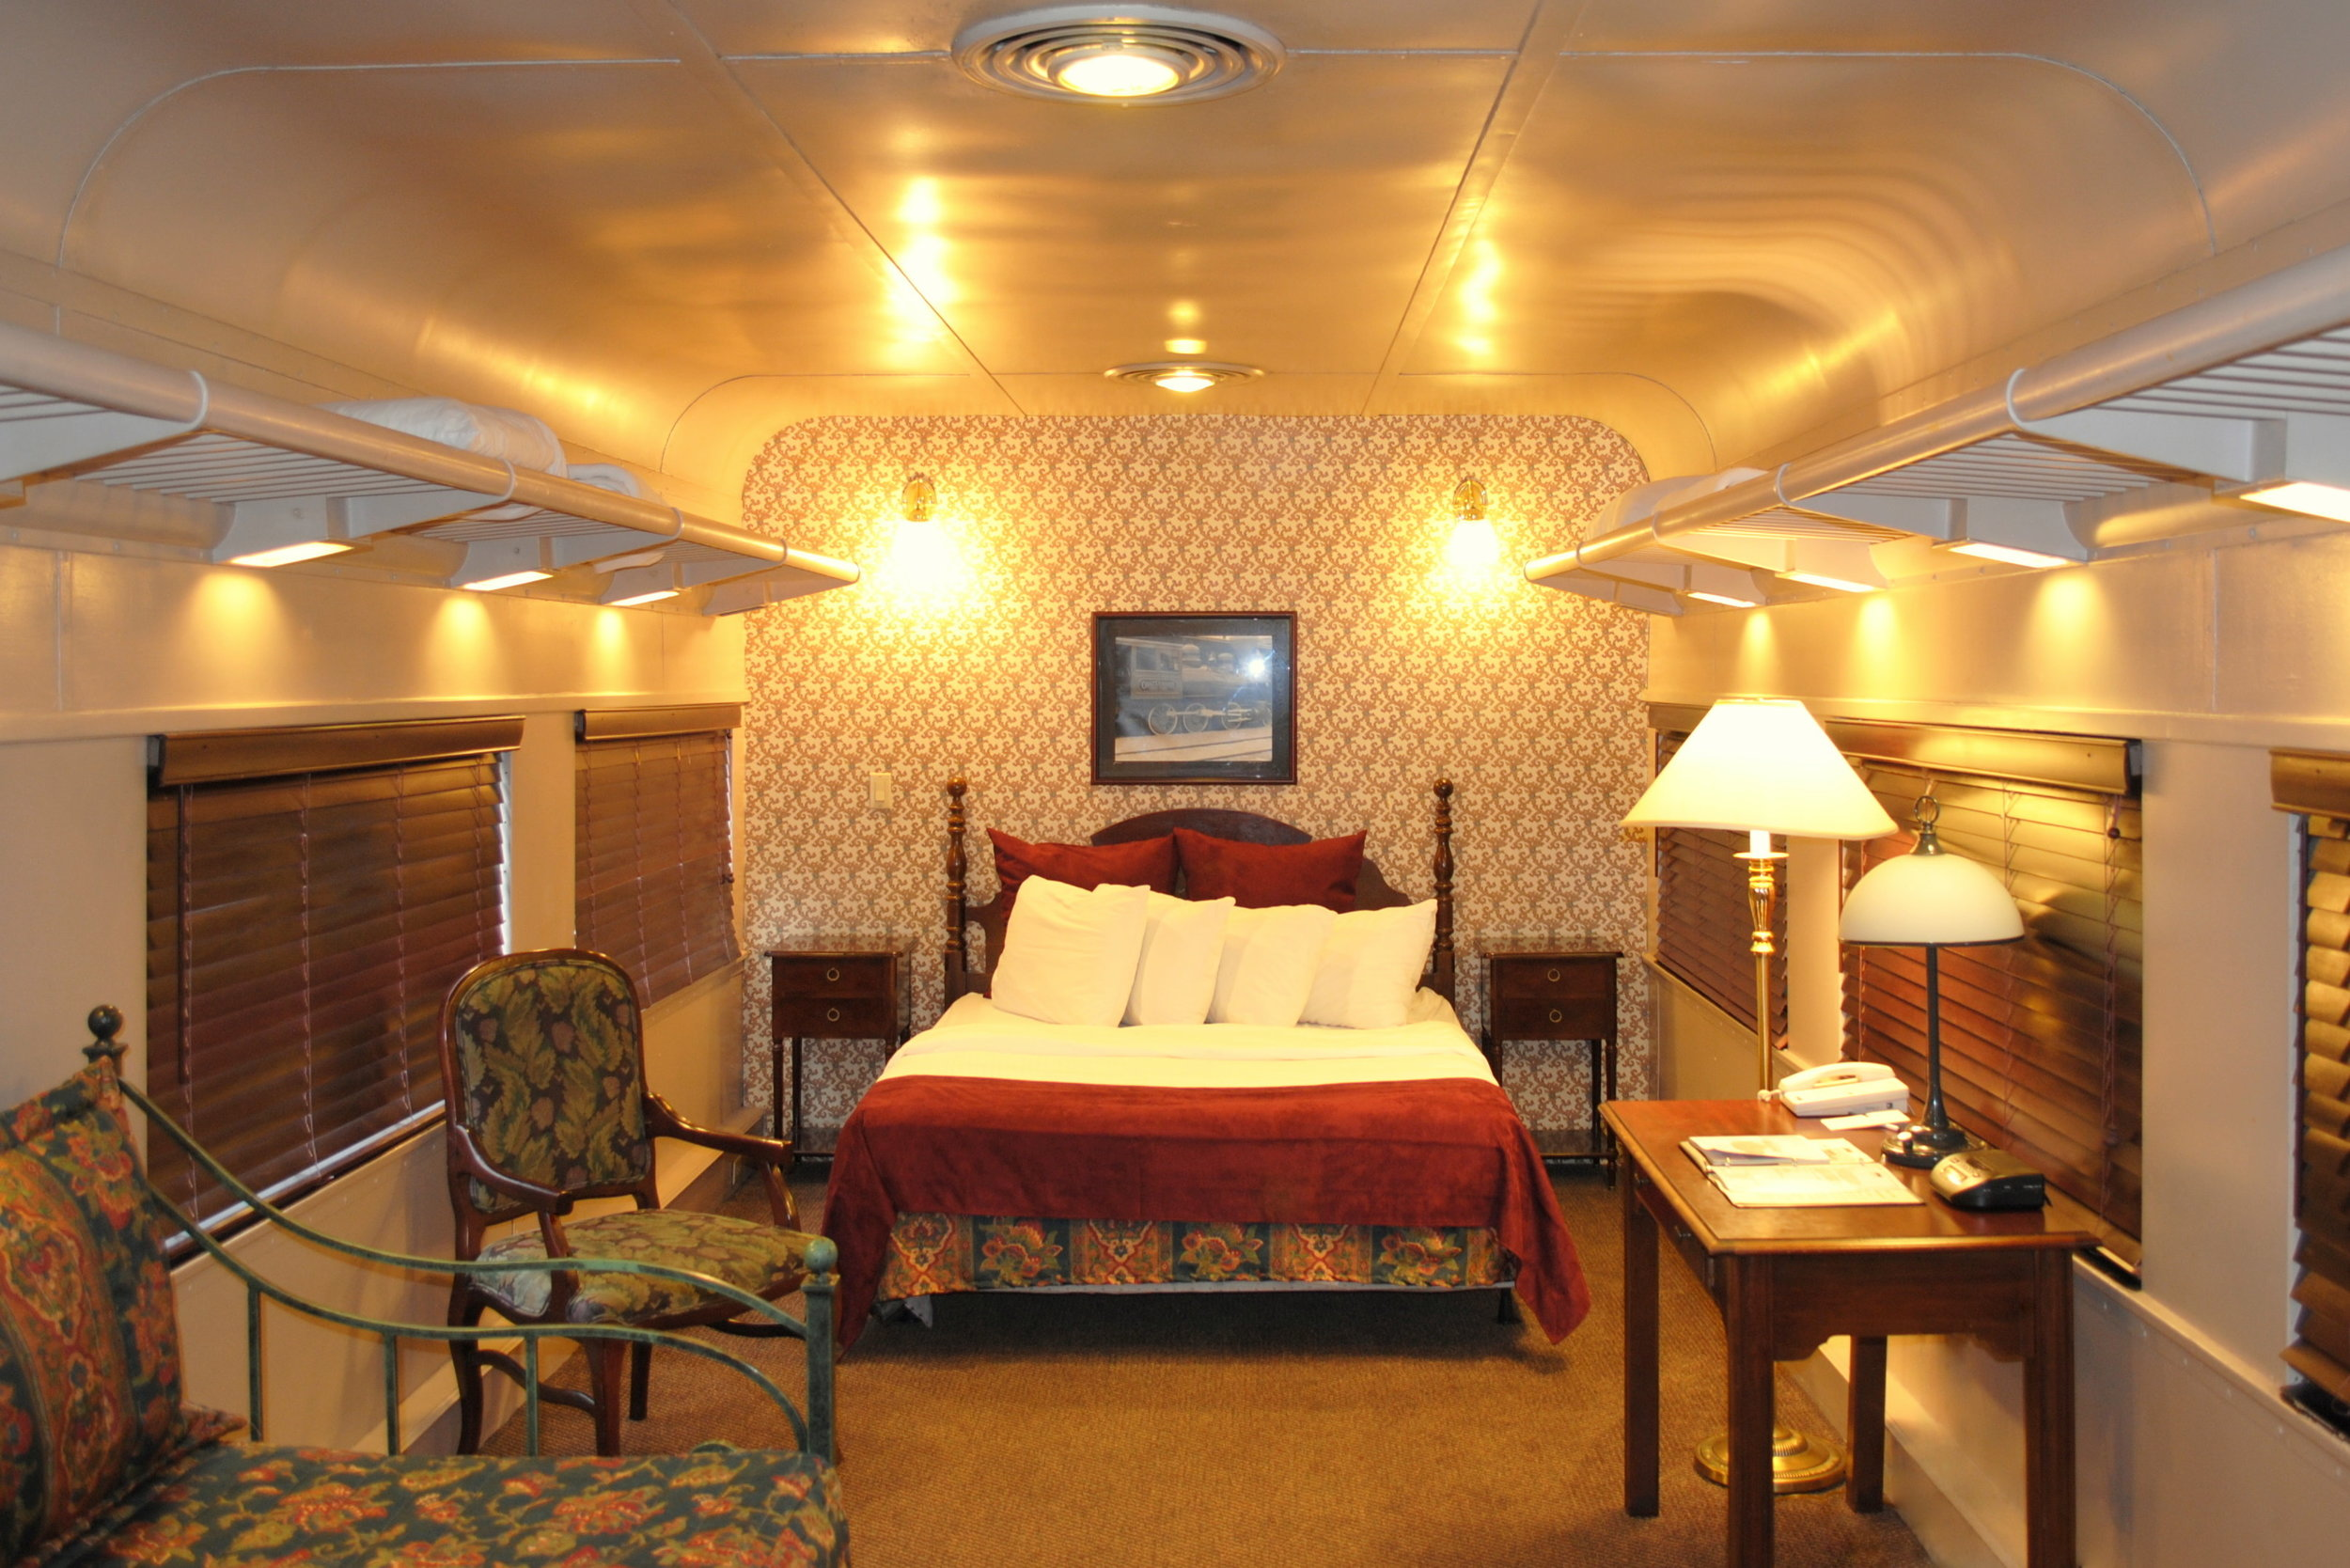 Pullman Train Car with Queen Bed